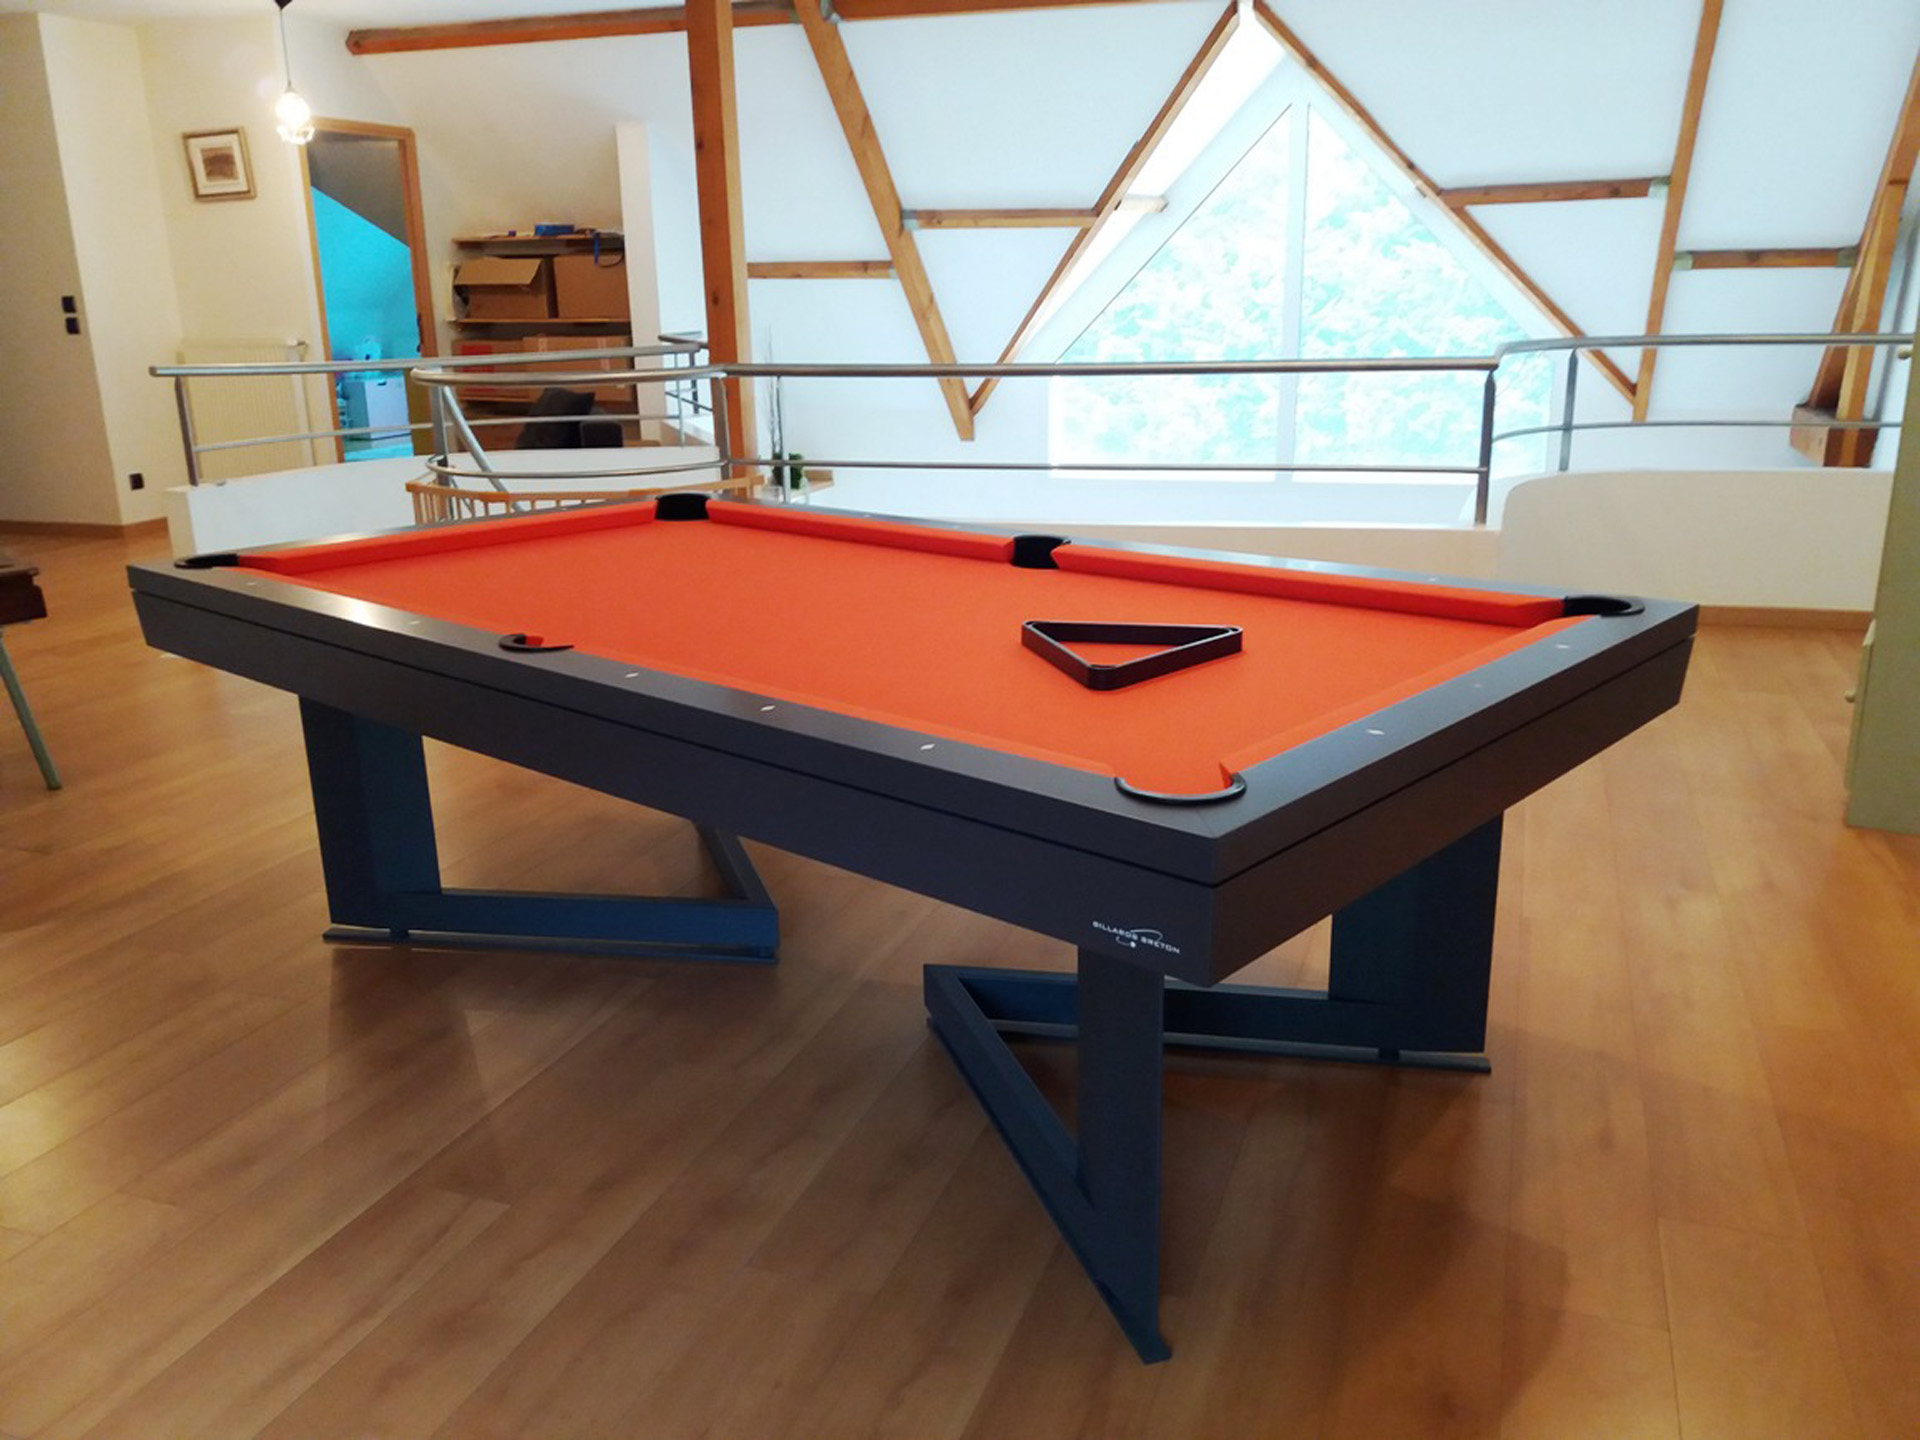 Table de billard Break design orange de Billards Bréton